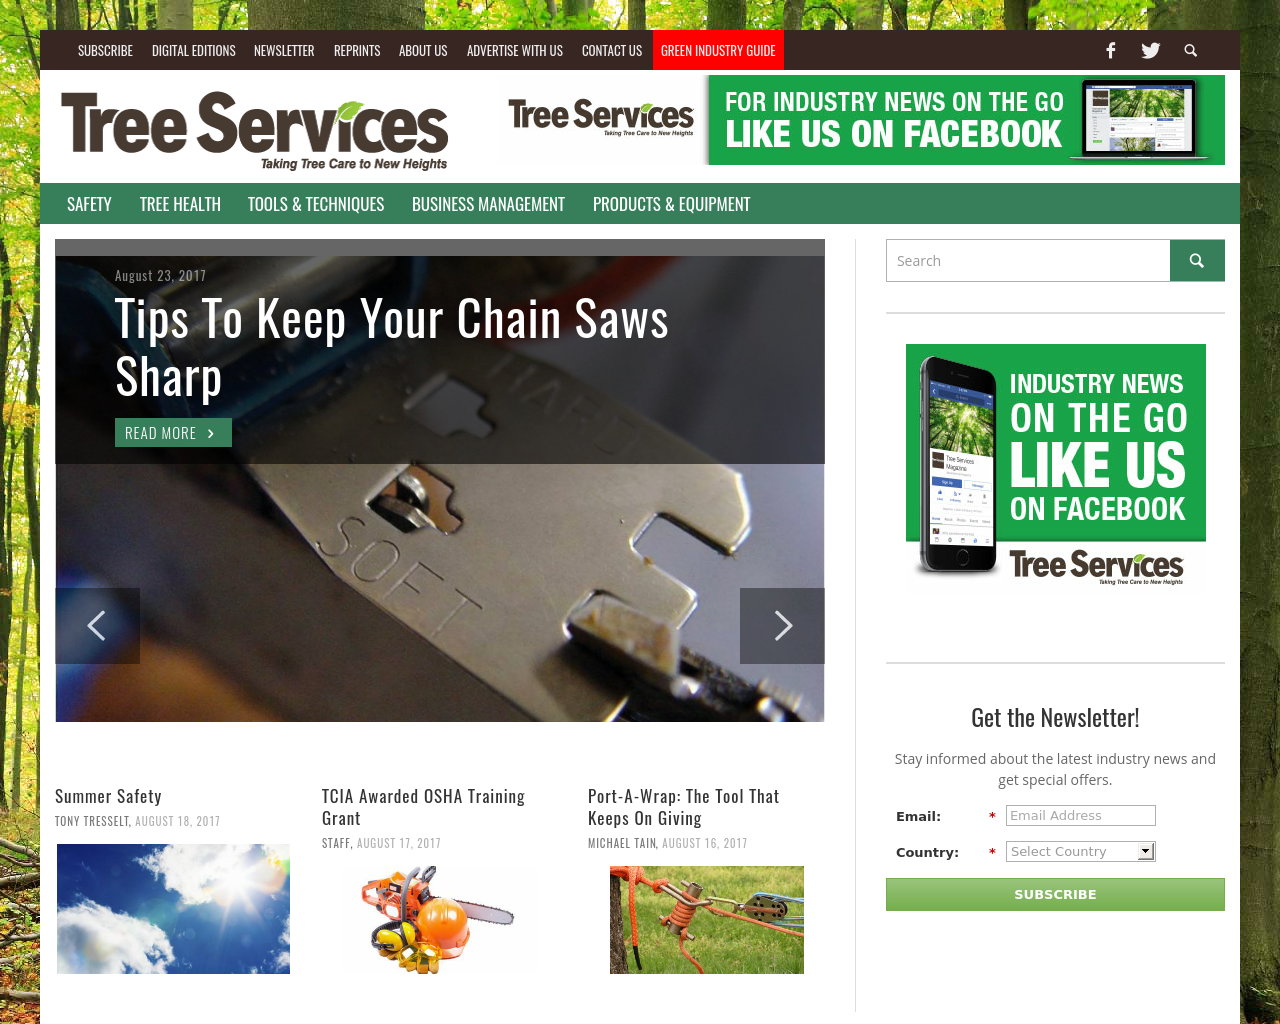 Tree-Services-Magazine-Advertising-Reviews-Pricing